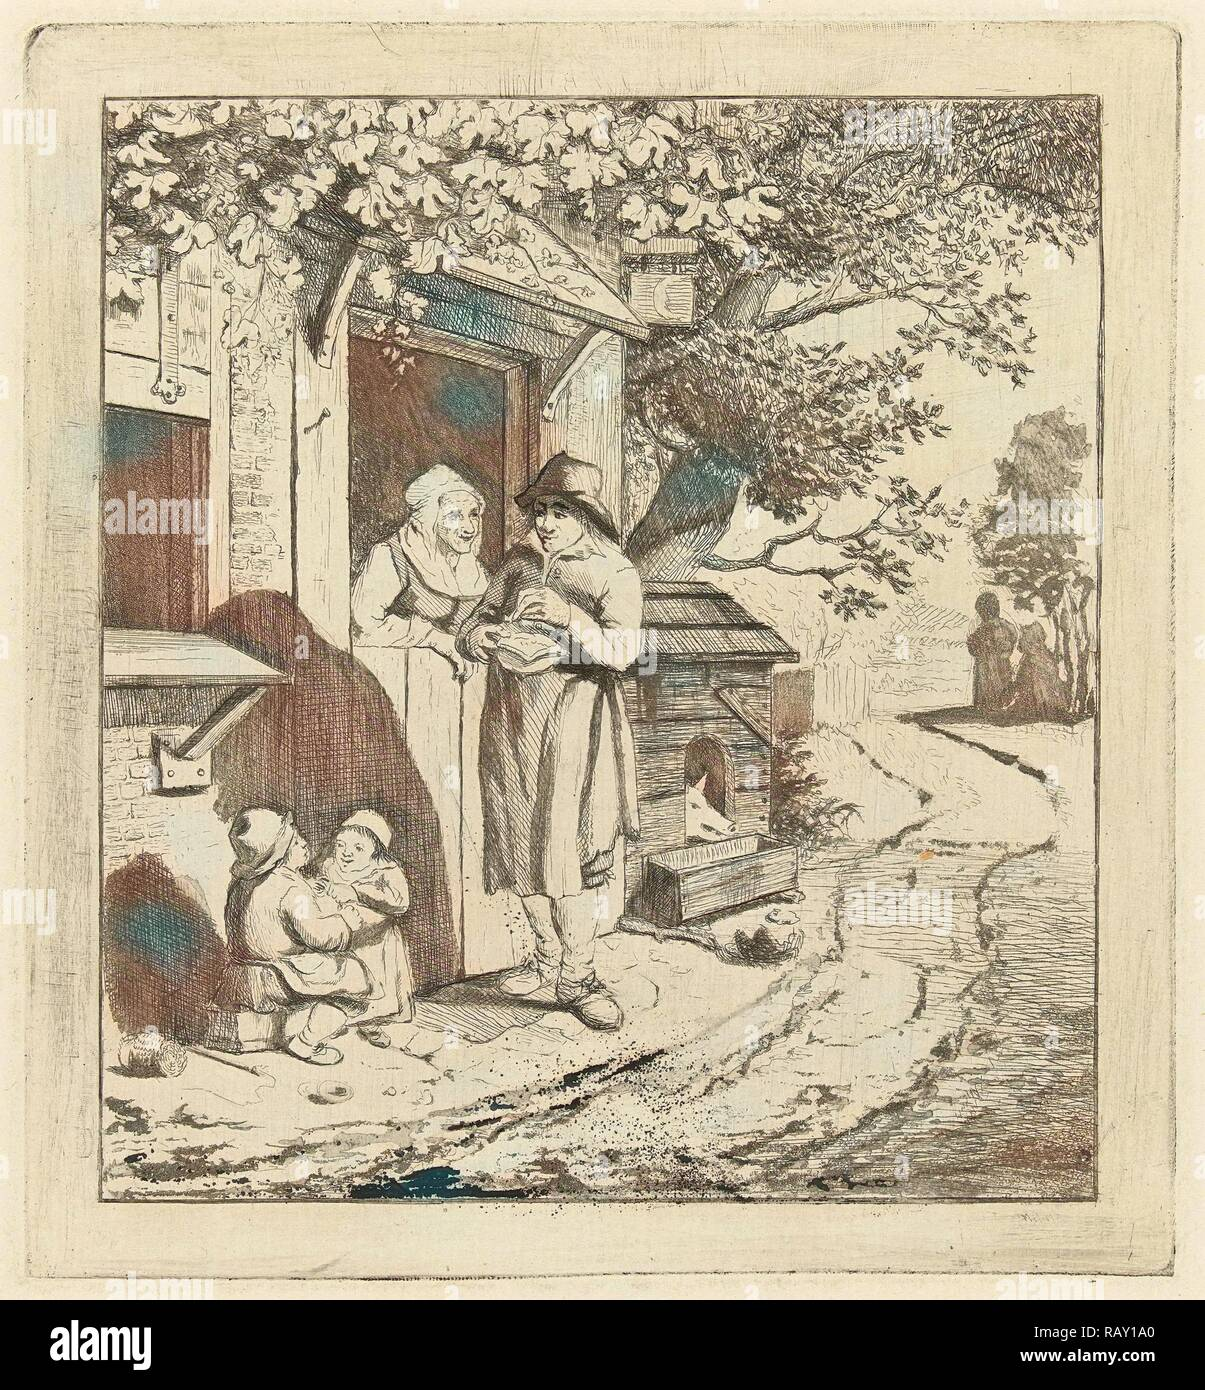 Man at the door of an inn, Marie Lambertine Coclers, 1776 - 1815. Reimagined by Gibon. Classic art with a modern reimagined - Stock Image